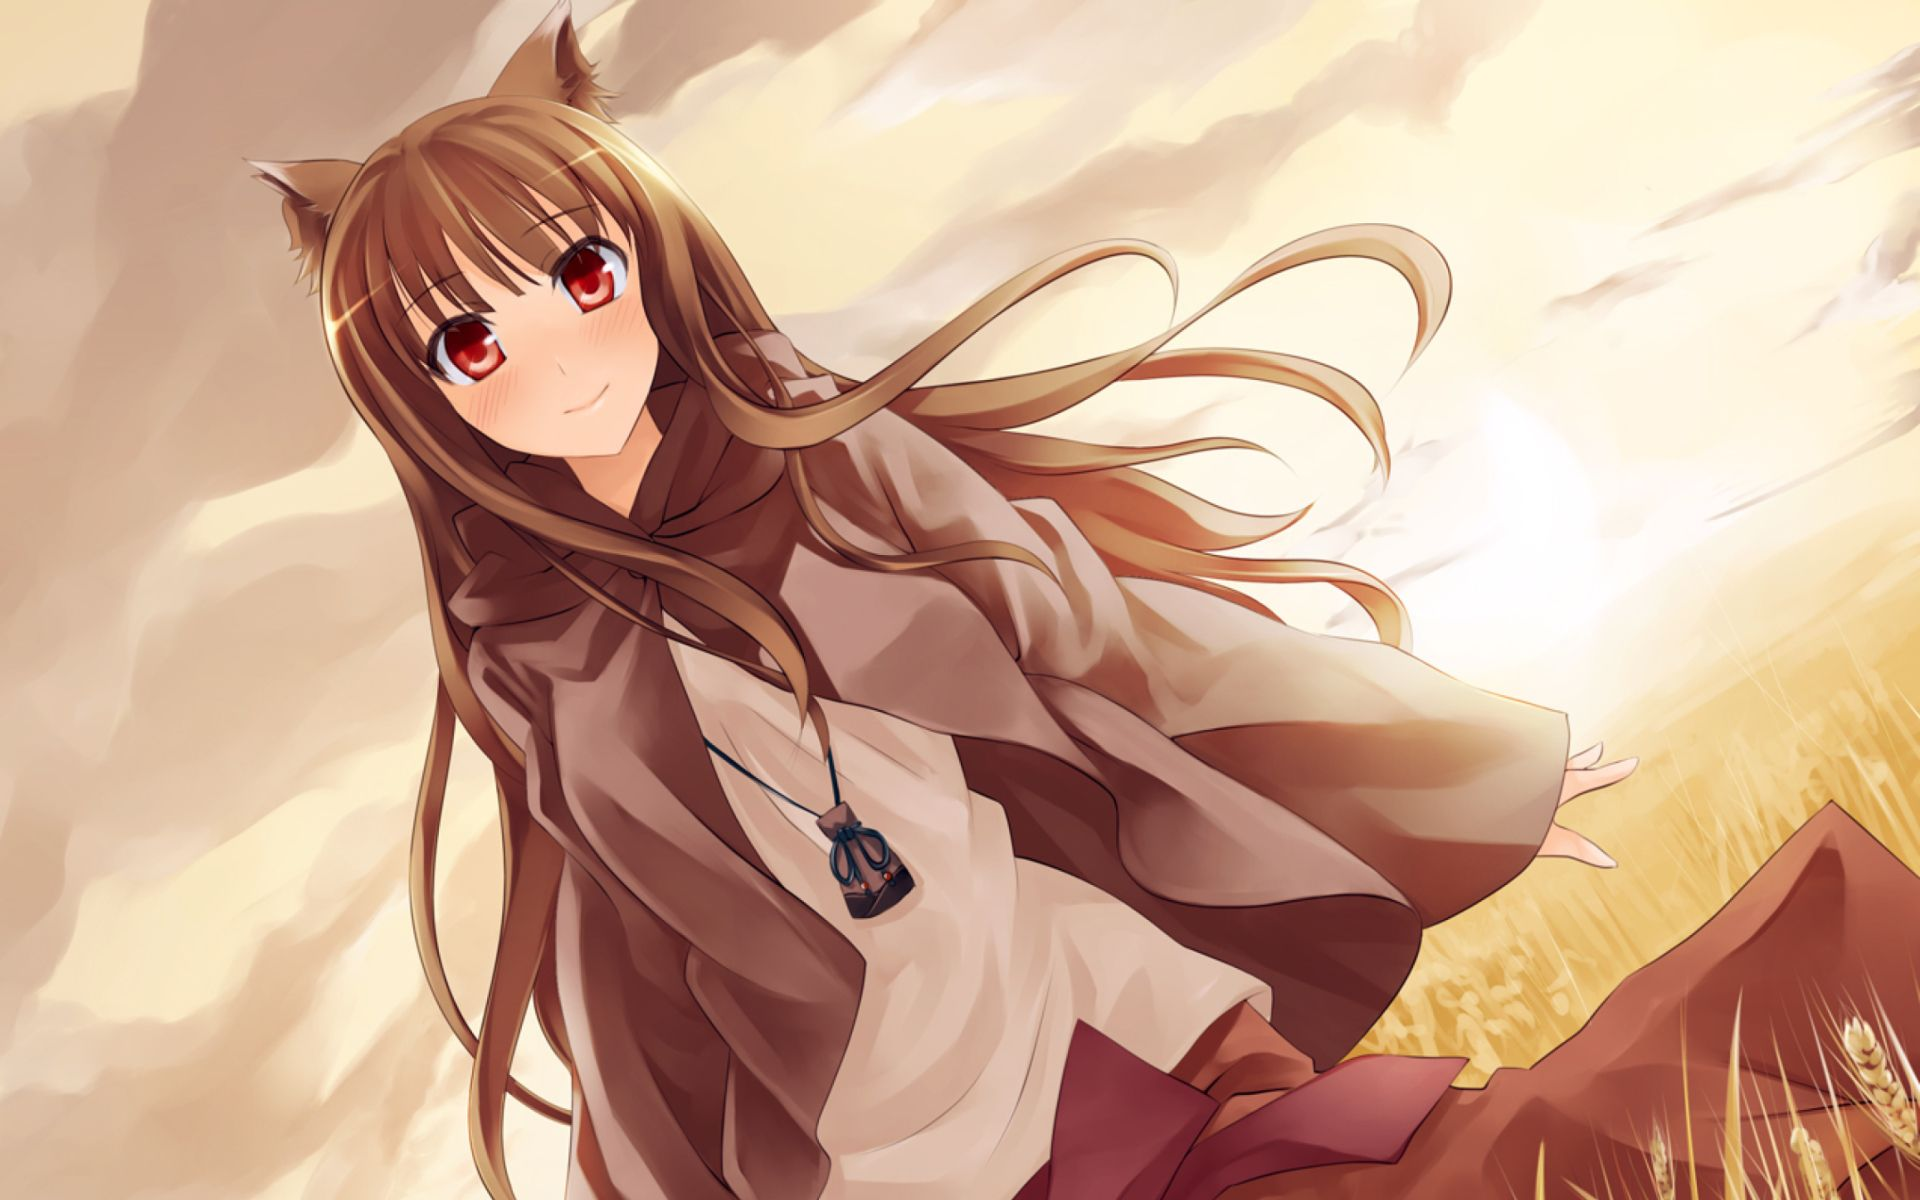 Nightcore Ghost (Mp3 Download) Spice and wolf holo